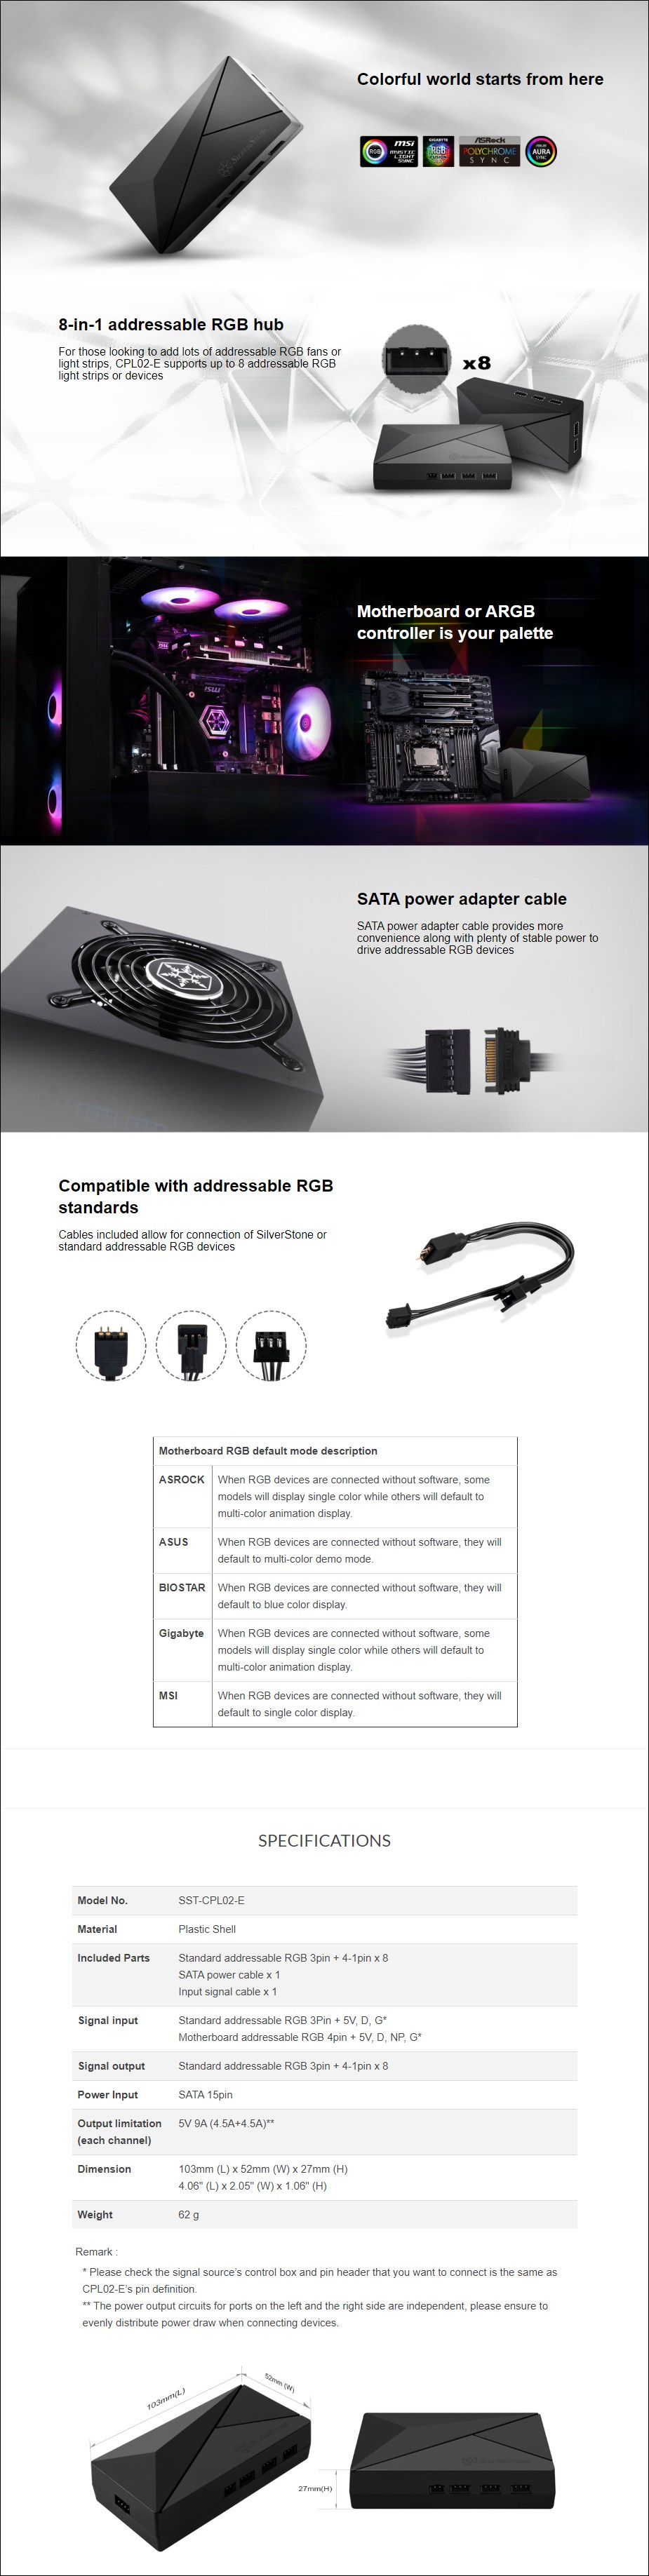 SilverStone CPL02-E 8-in-1 Addressable RGB HUB - Overview 1